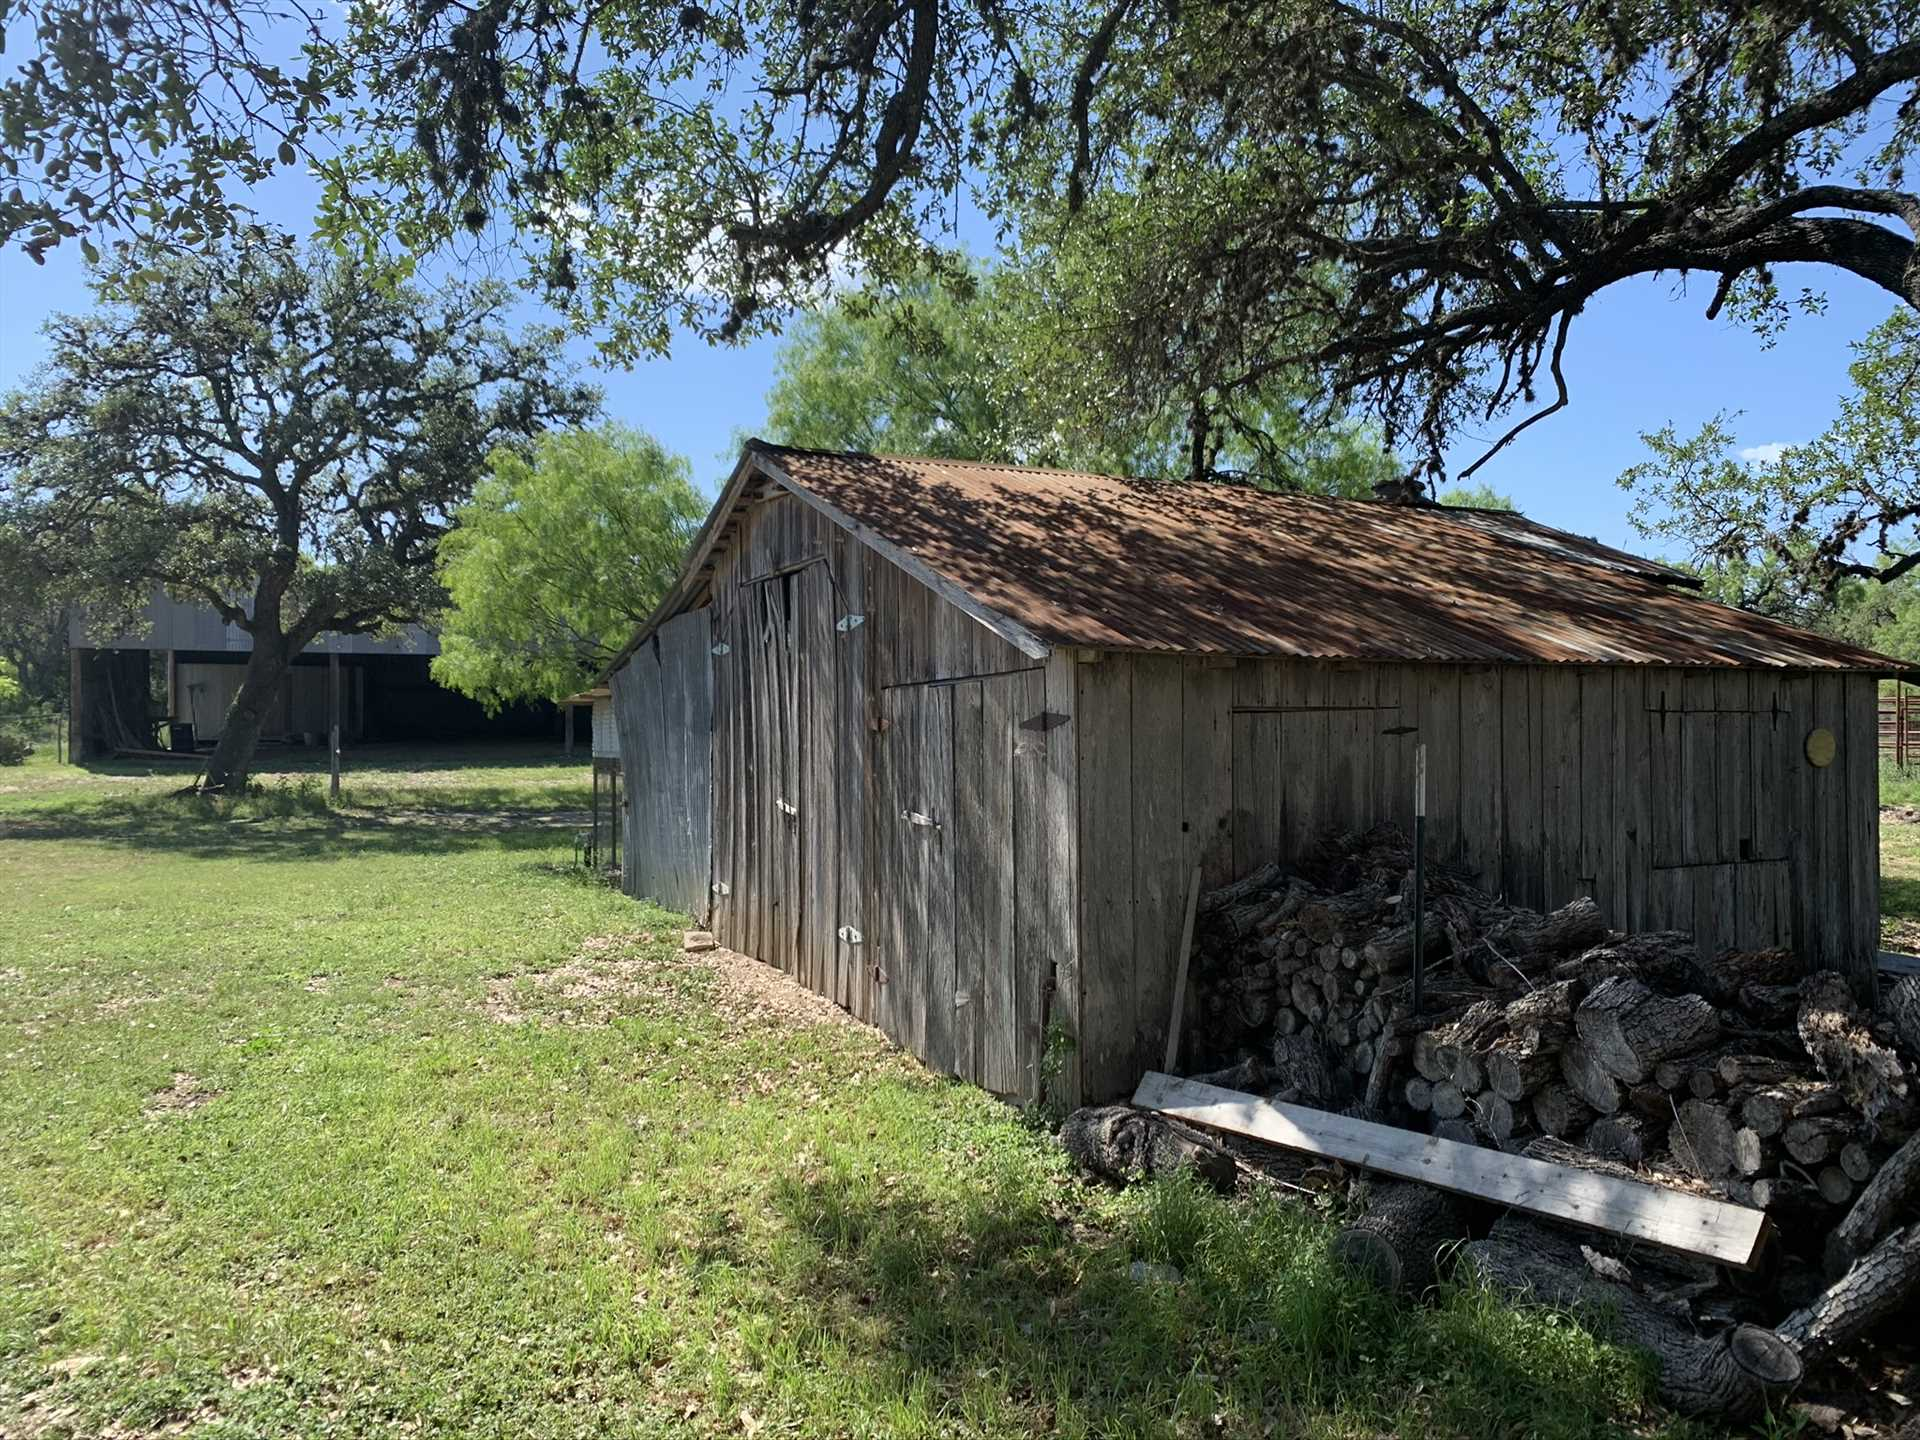 No matter what you'd like to get out of your Hill Country getaway, you'll find plenty to your liking at the Mighty Oaks Retreat!